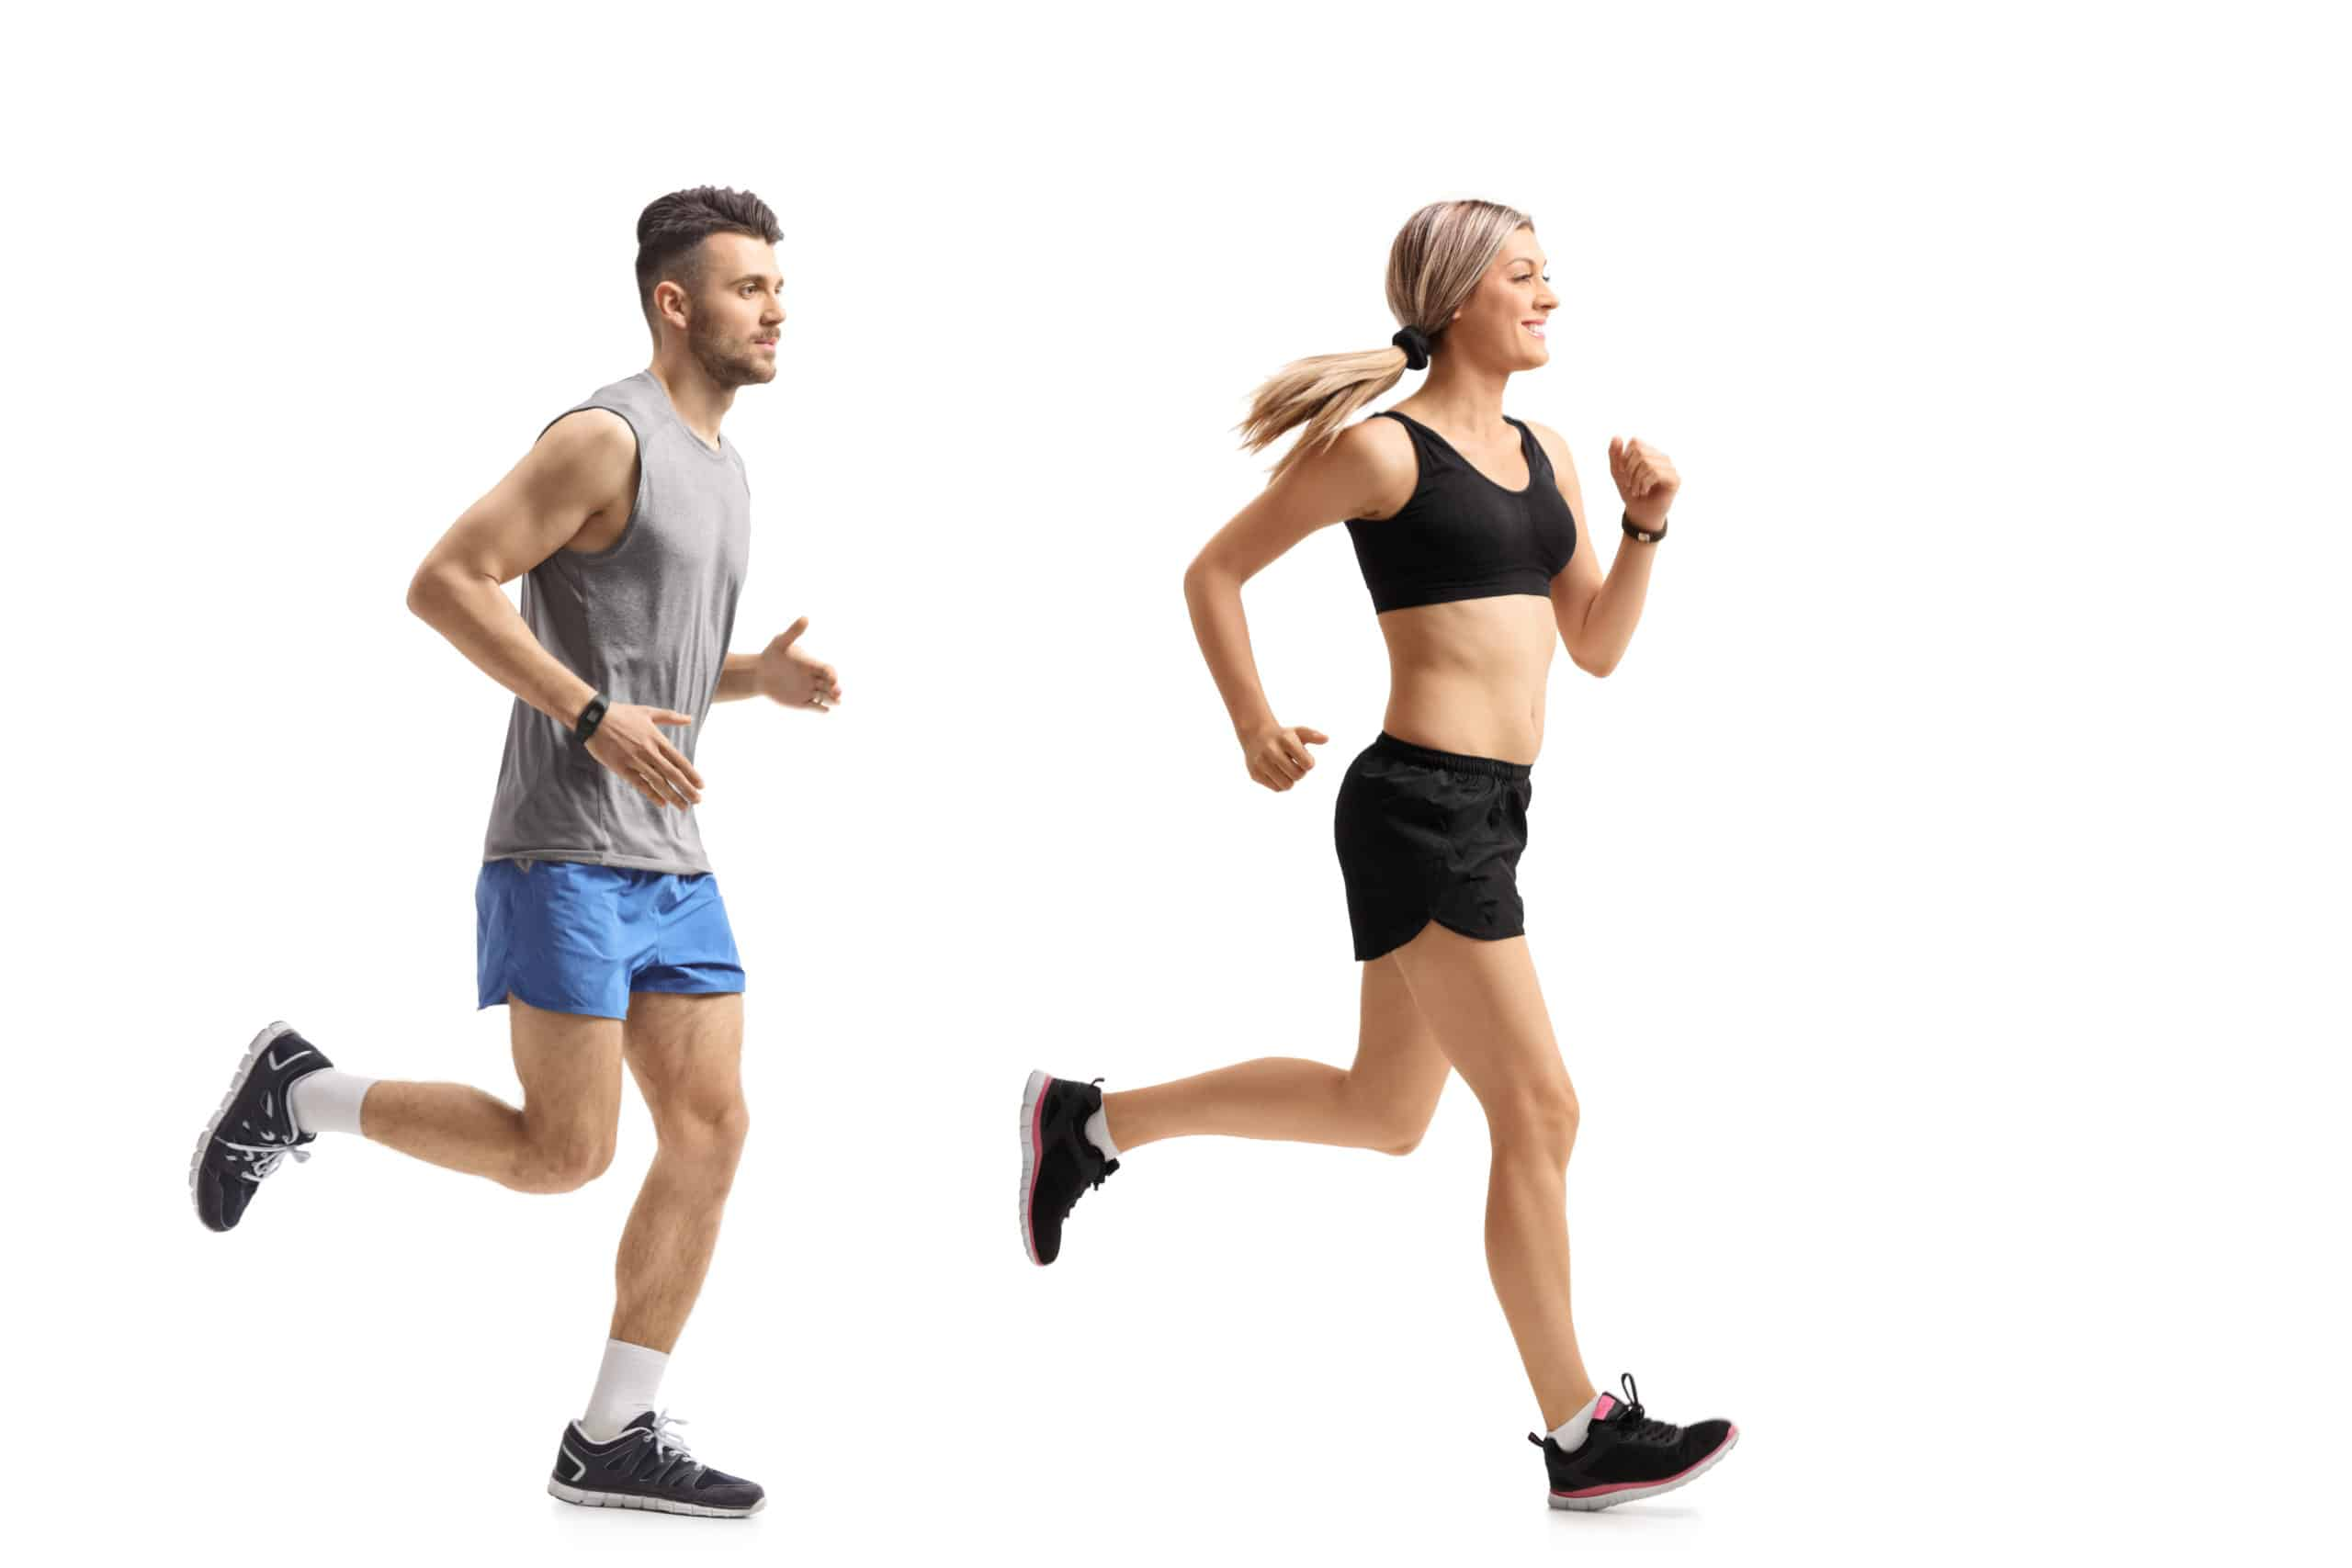 Full length profile shot of a young man and a young woman runnin